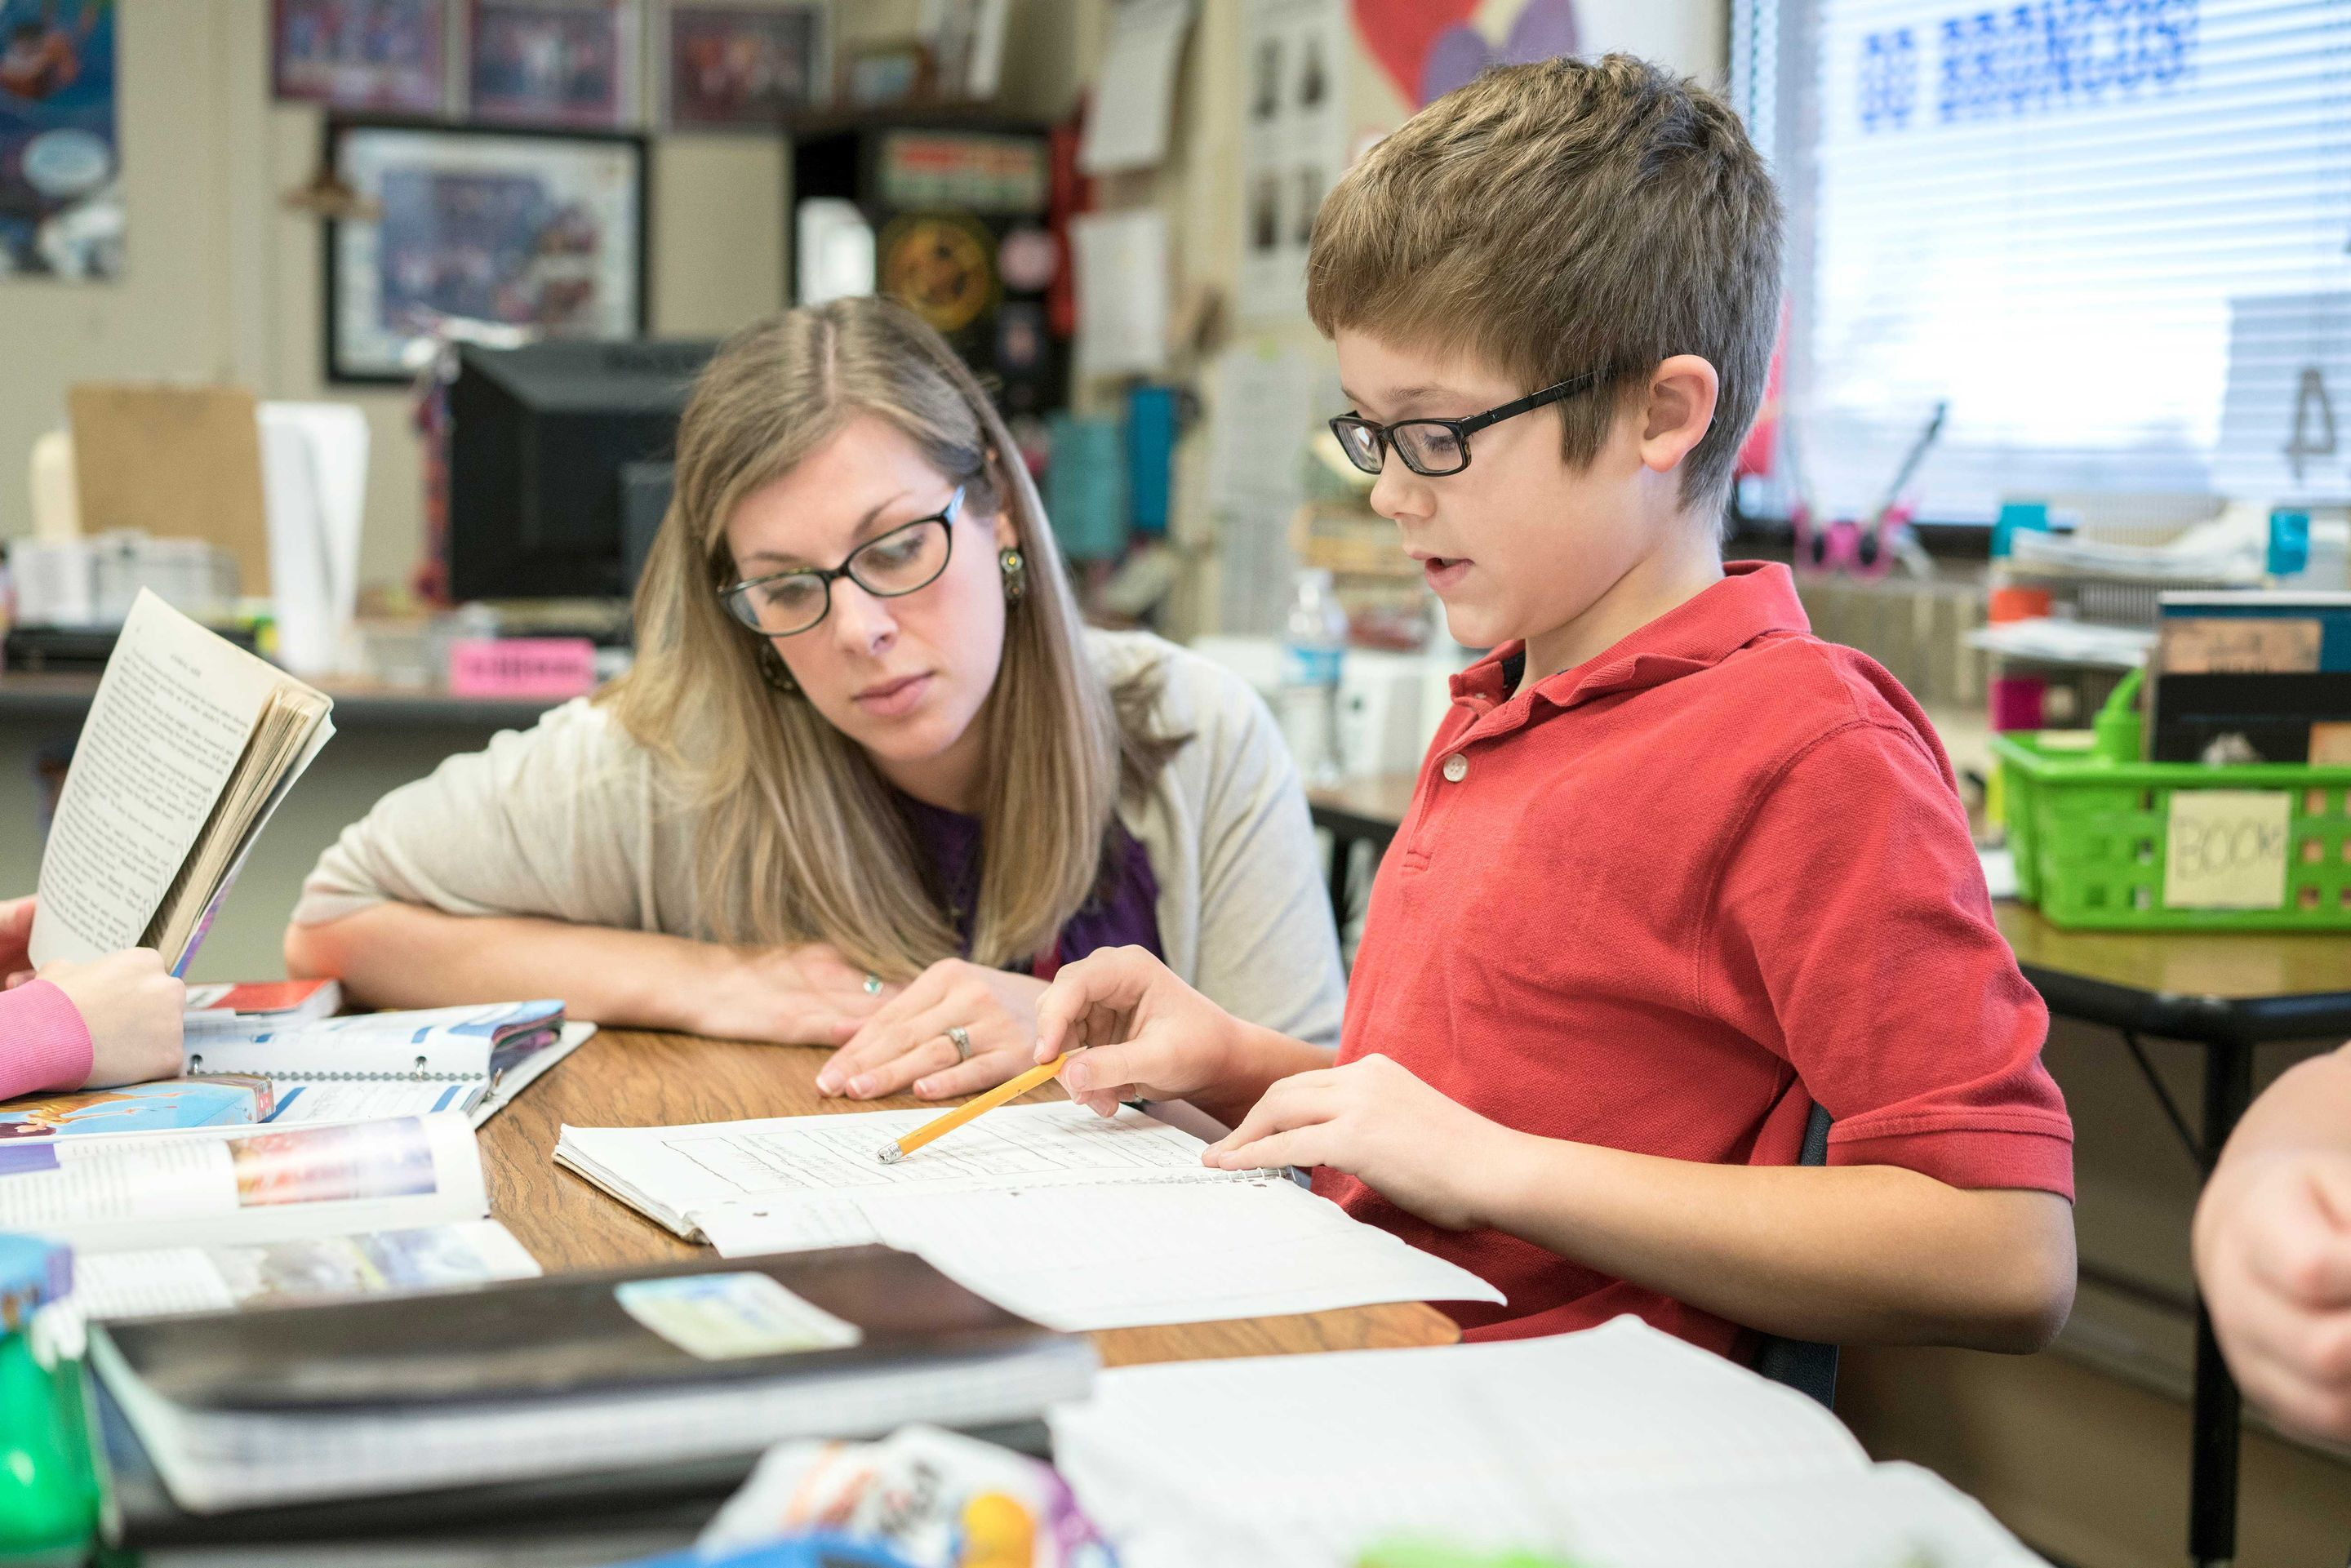 Elementary school teacher helping student in classroom.